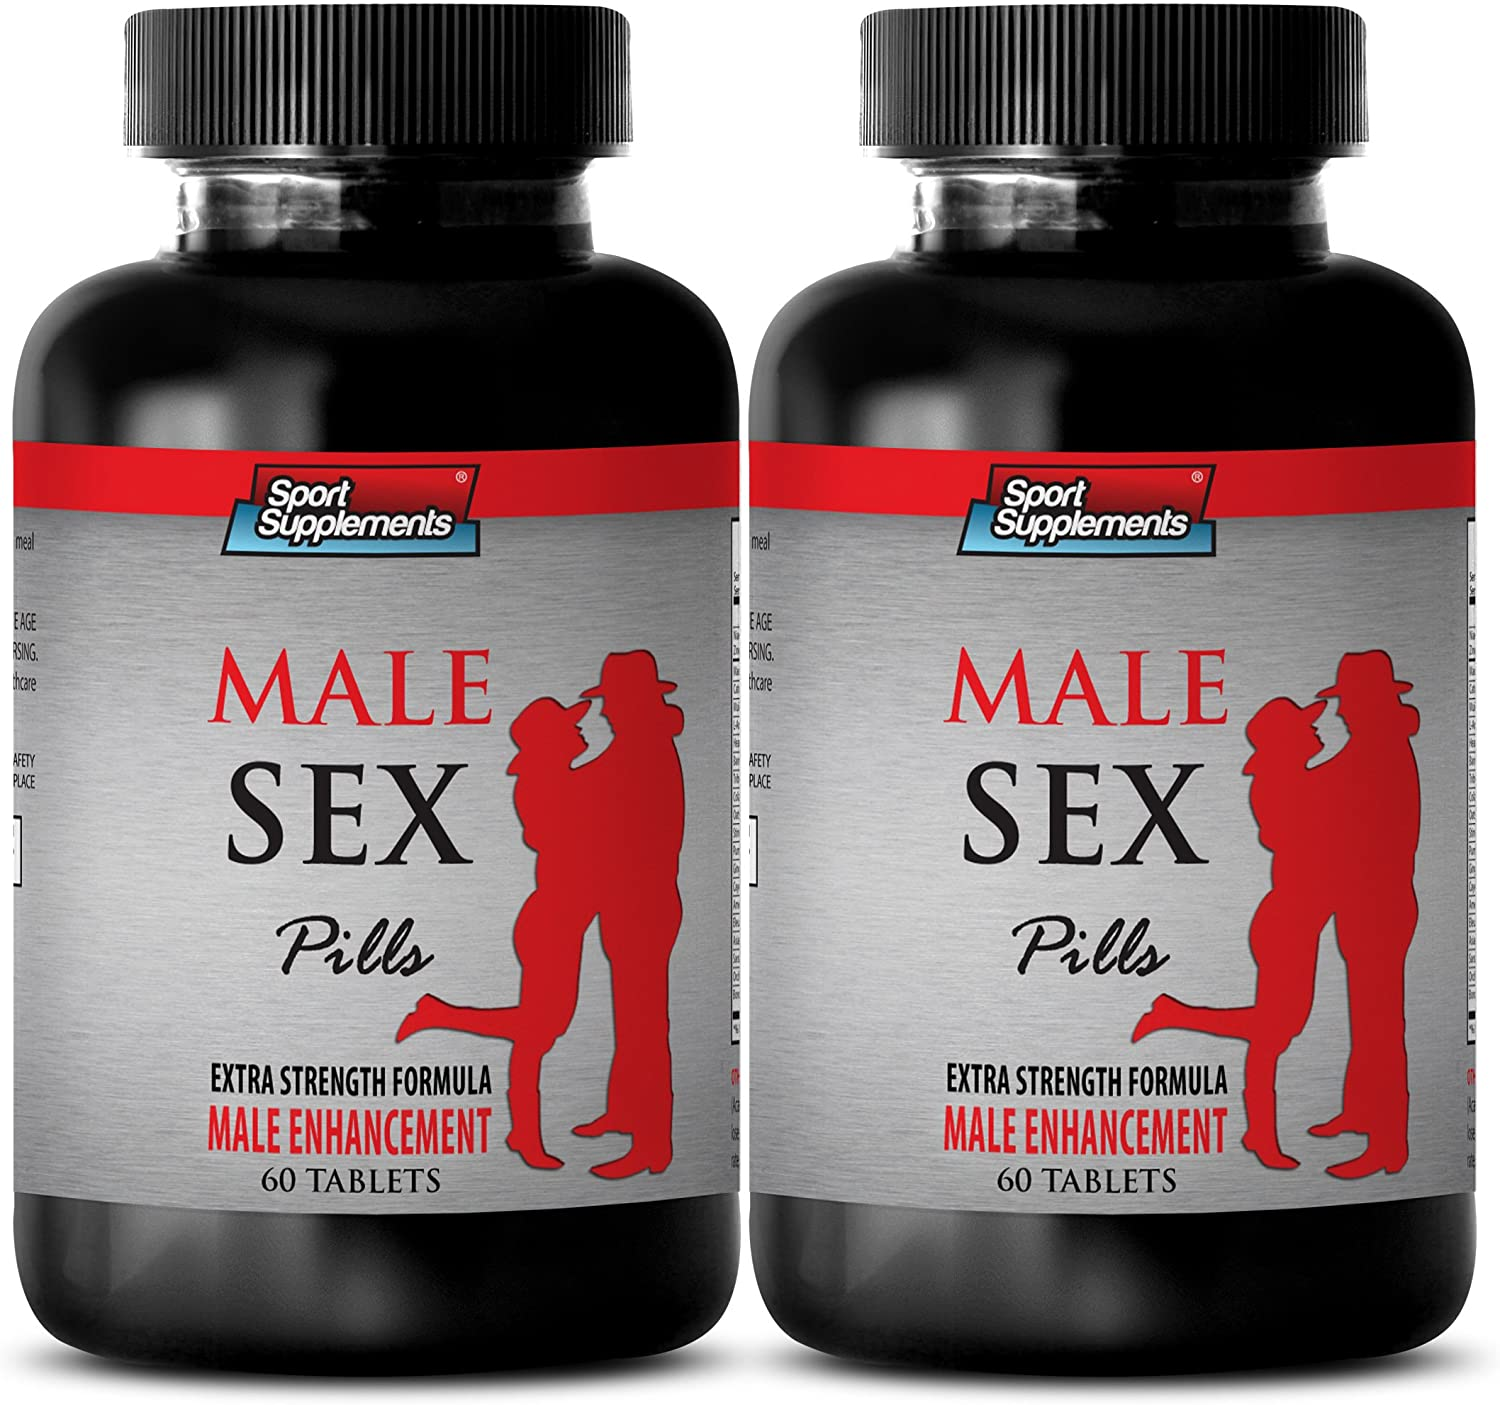 libido for Men Sexual Pill - Male Sex Pills - Extra Strength Formula - Male Enhancement - maca Harmony - 2 Bottles (120 Tablets)